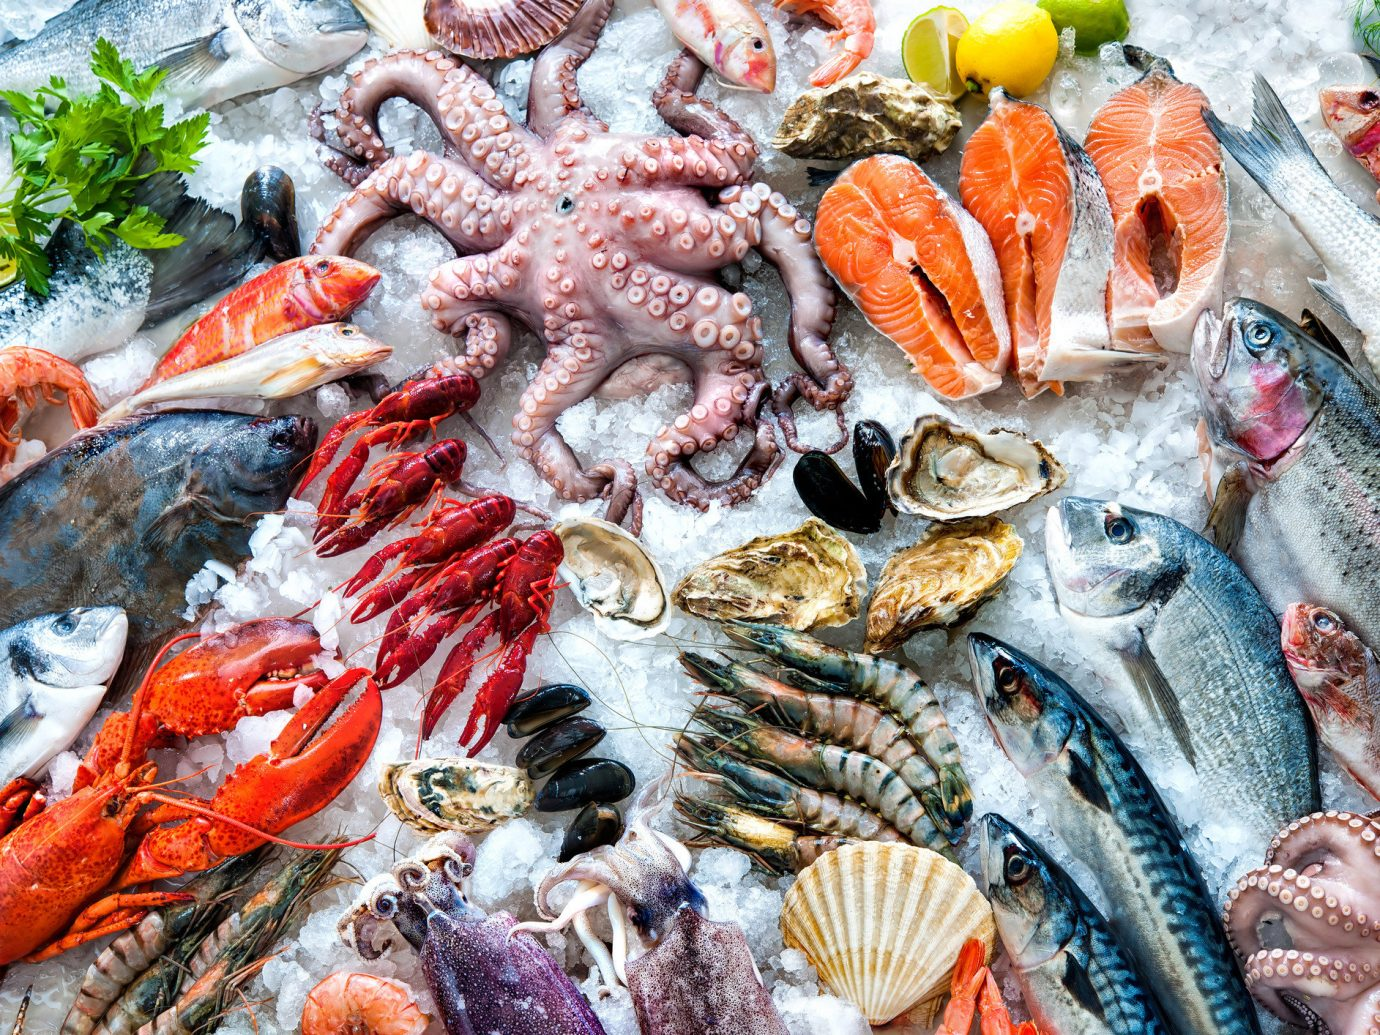 Trip Ideas marine biology food Seafood fish dish cuisine different meat variety